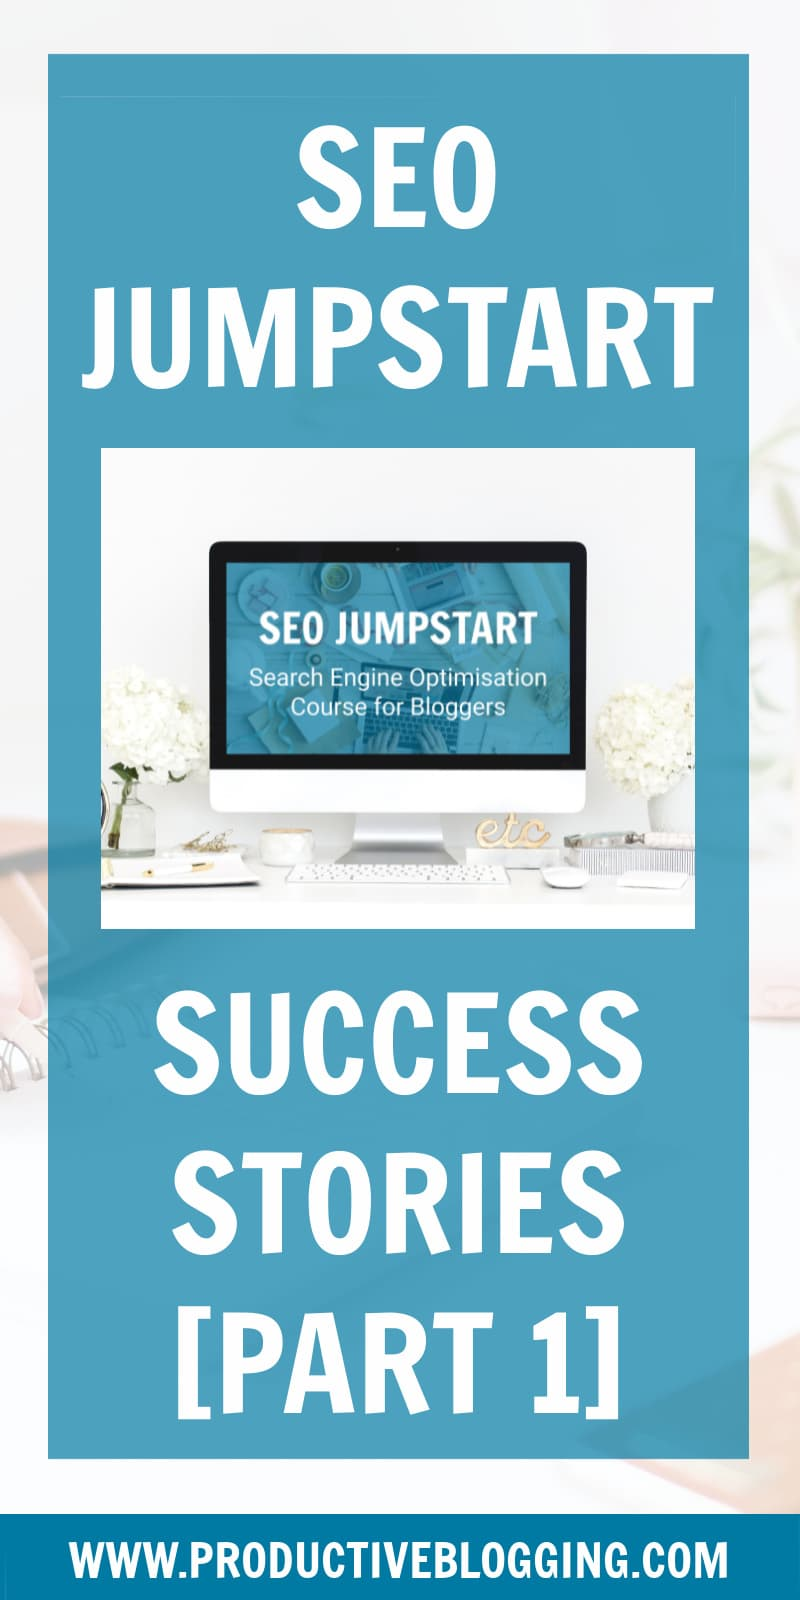 If you are considering buying an SEO course, you want to know if it works, right? Well, who better to tell you than students who've taken the course? I interviewed 5 SEO Jumpstart students about how they got on with the course and what results they achieved… #seojumpstart #seocourse #seocourseforbloggers #SEOforbloggers #SEOforbeginners #beginnersSEO #SEO #SEOtips #SEOhacks #searchengineoptimization #growyourblog #bloggrowth #bloggingtips #blogtips #blogging #bloggers #productiveblogging